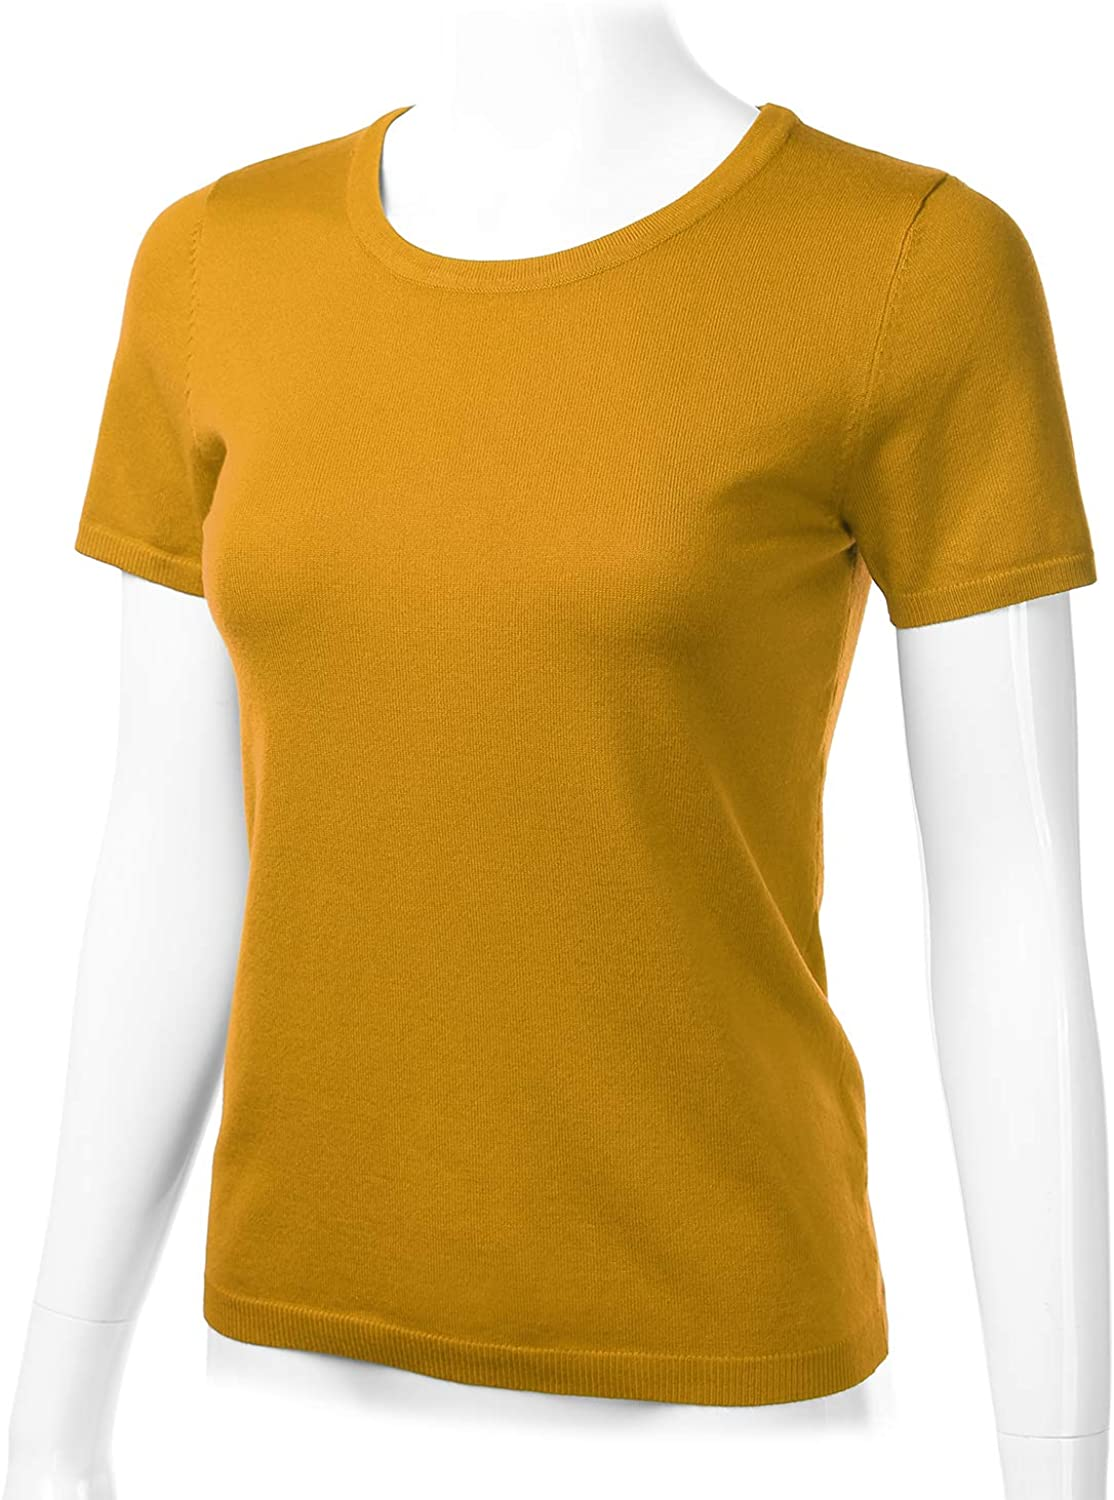 FLORIA Womens Soft Basic Crew Neck Pullover Short Sleeve Knit Sweater S-XL